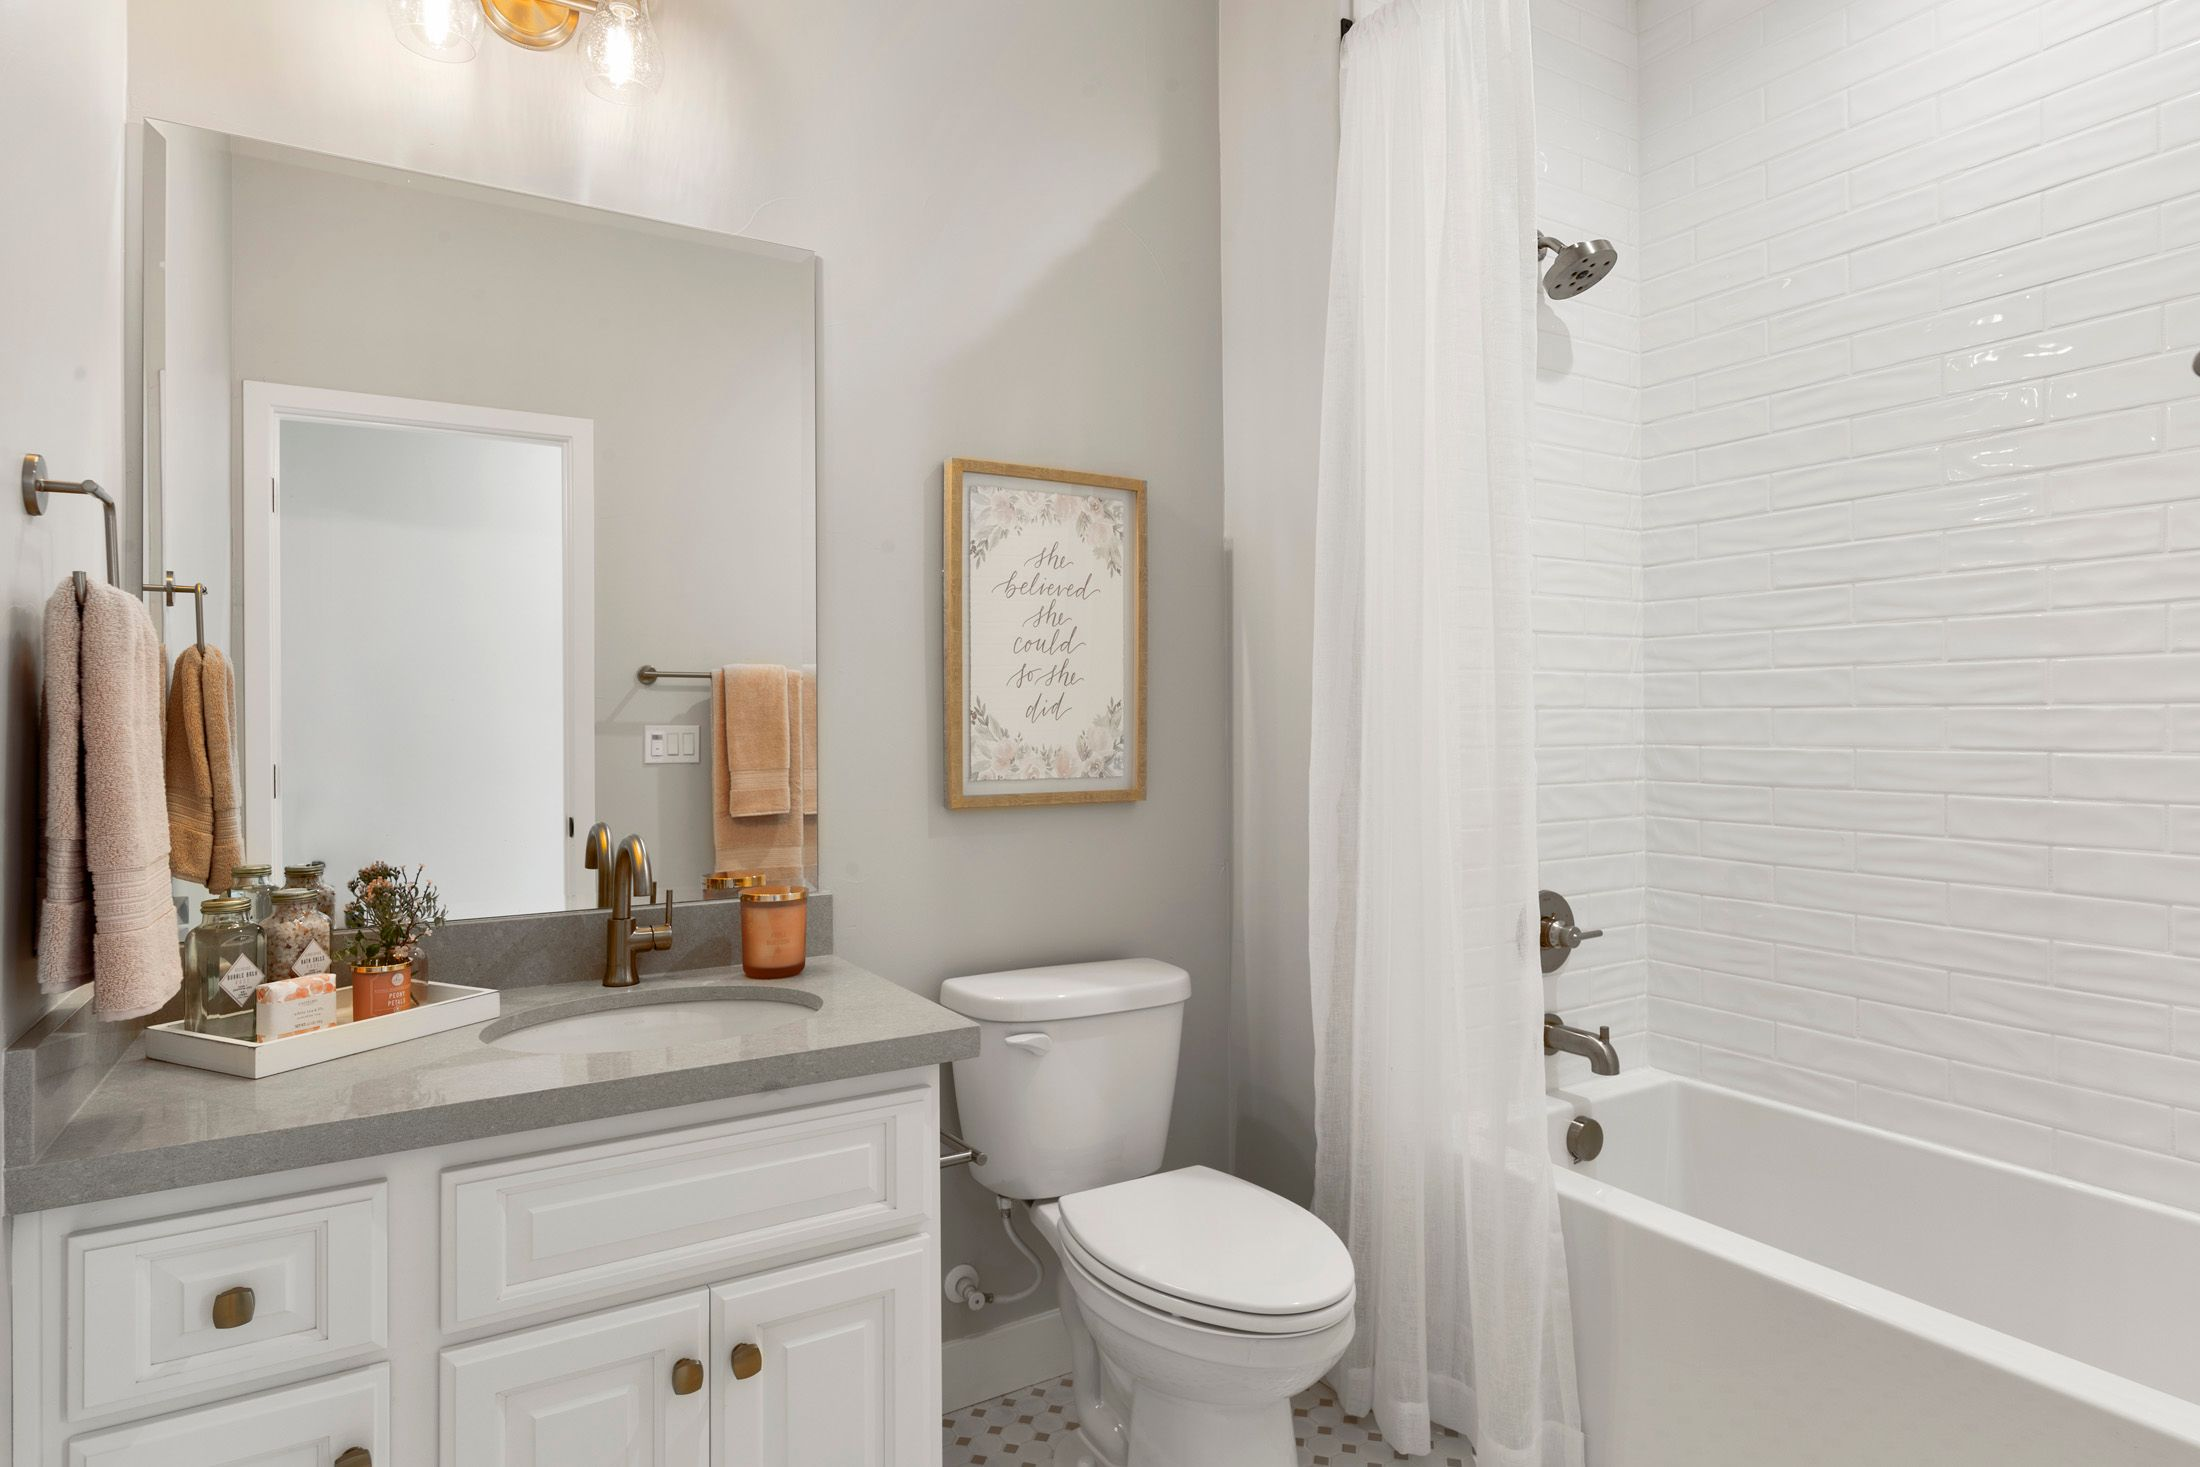 Bathroom featured in the Residence 5 By BlackPine Communites in Sacramento, CA